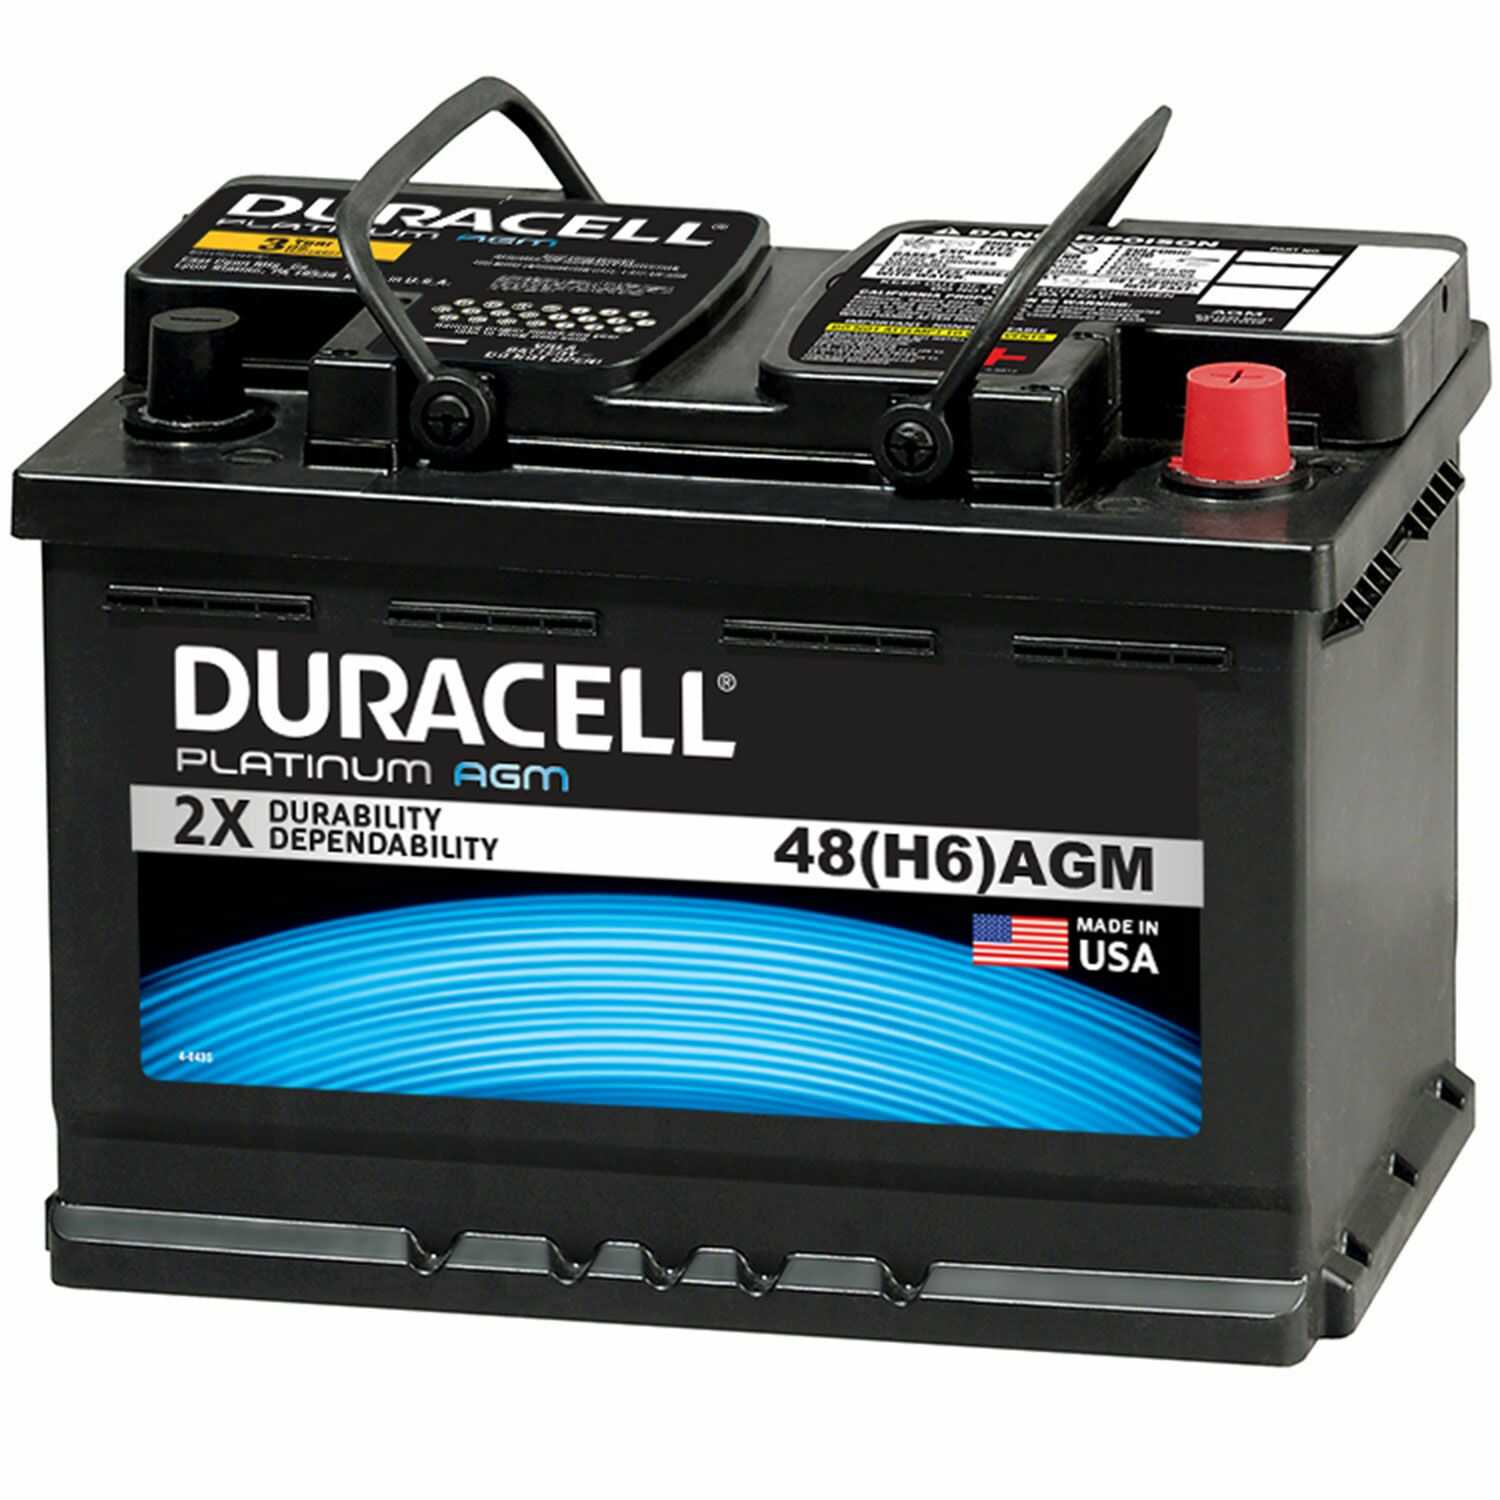 Car Battery Costco >> Signs Of A Dead Battery In A Car - Car Talk - Nigeria